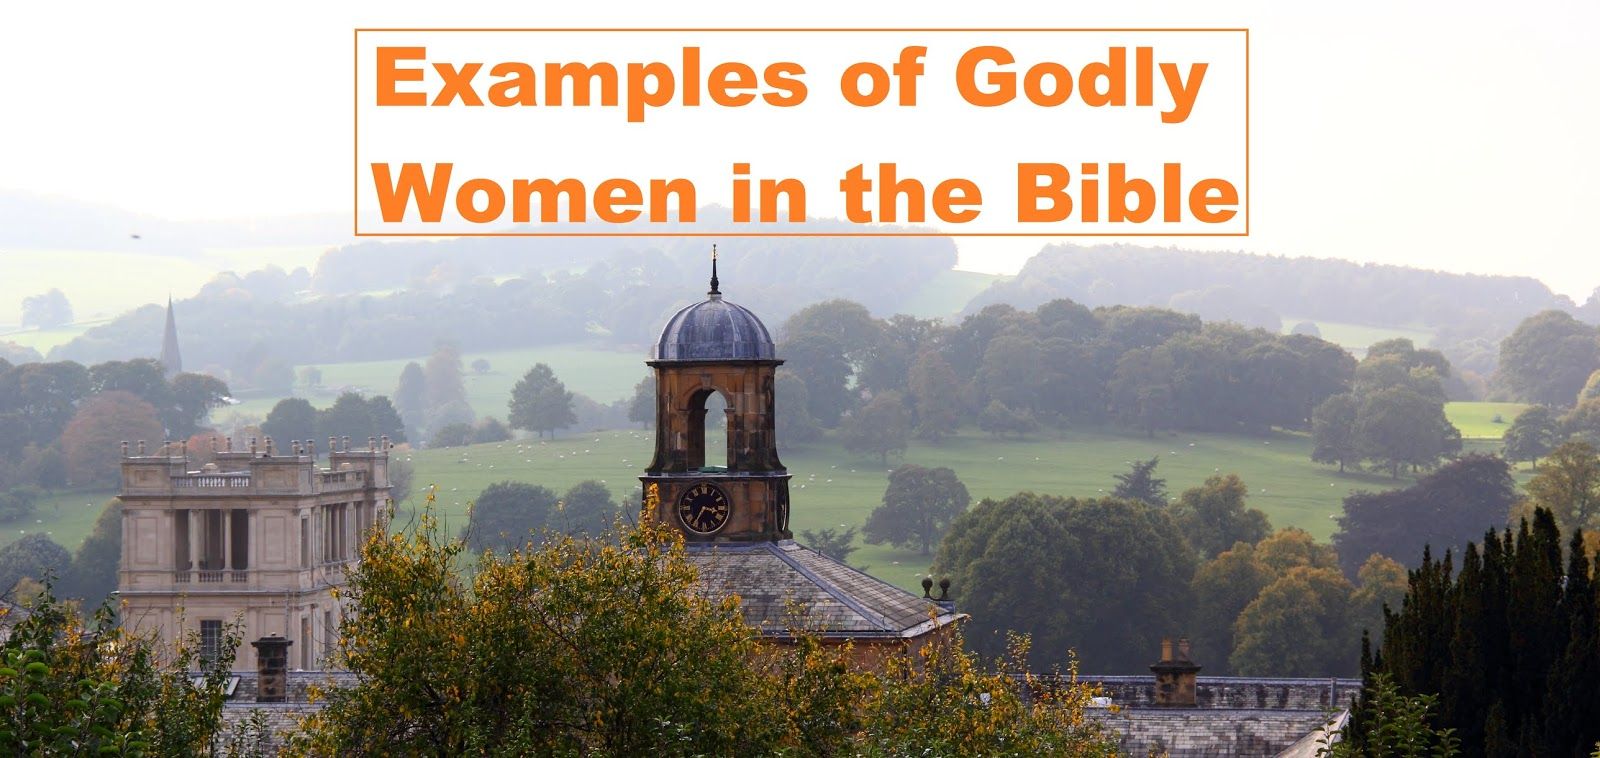 Examples of Godly Women in the Bible